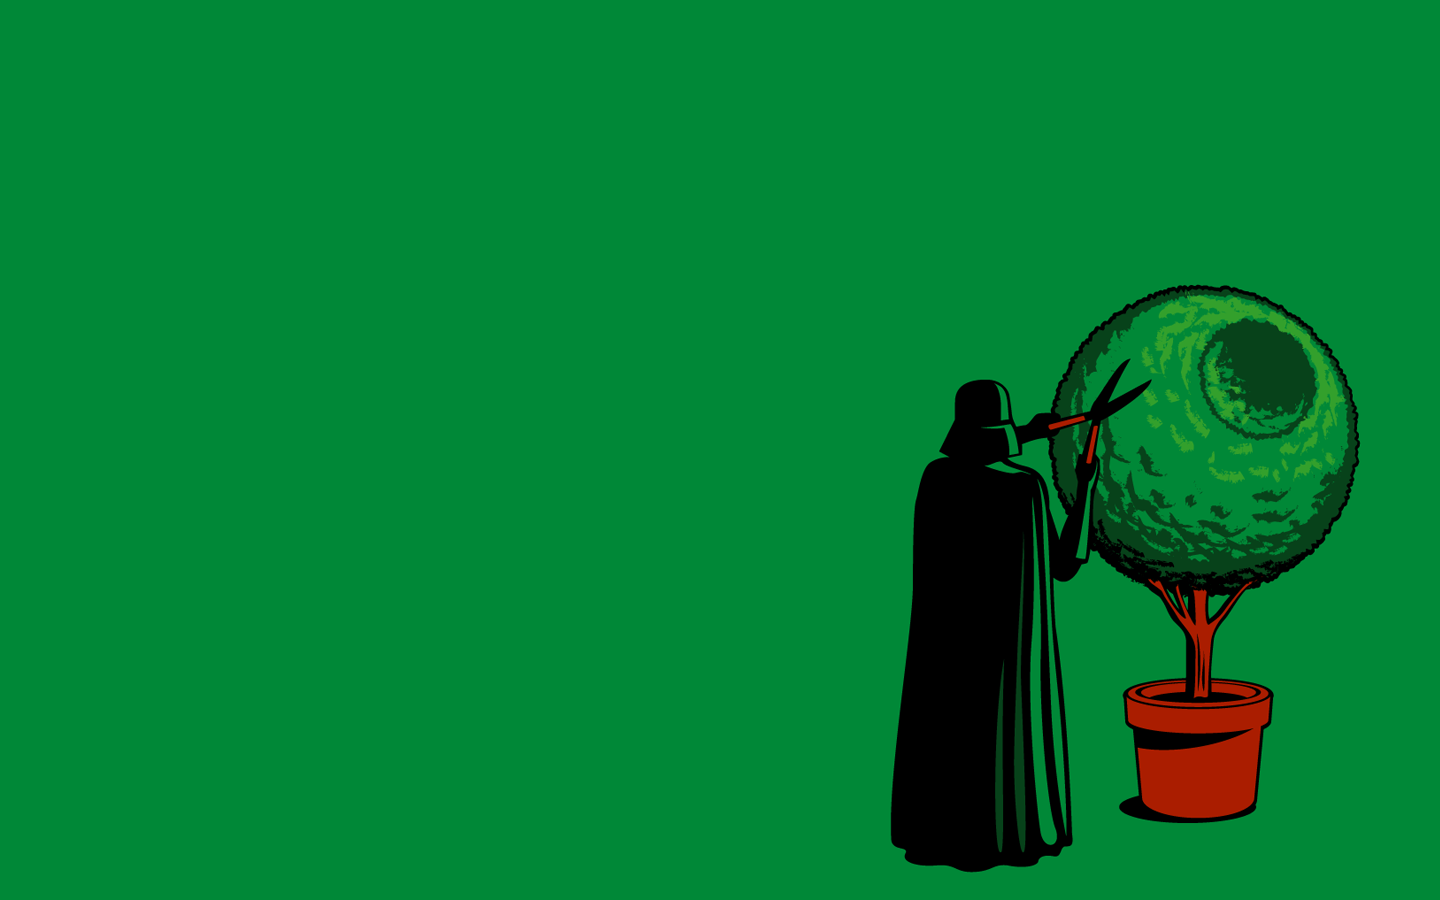 Star Wars Funny Wallpaper